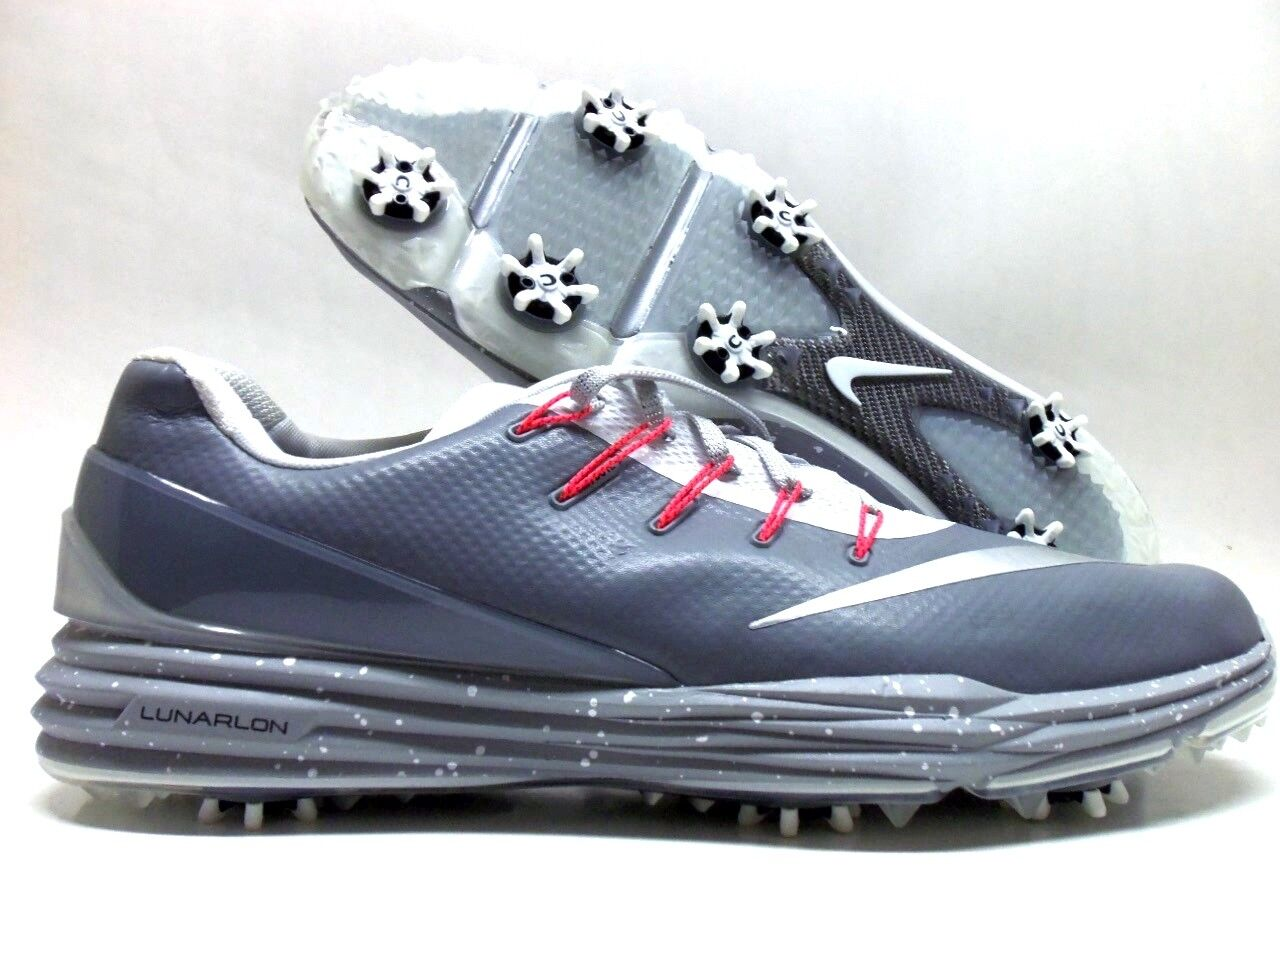 NIKE LUNAR CONTROL 4 ID GOLF CLEAT GREY/SILVER-WHITE SIZE MEN'S 12 Price reduction The most popular shoes for men and women